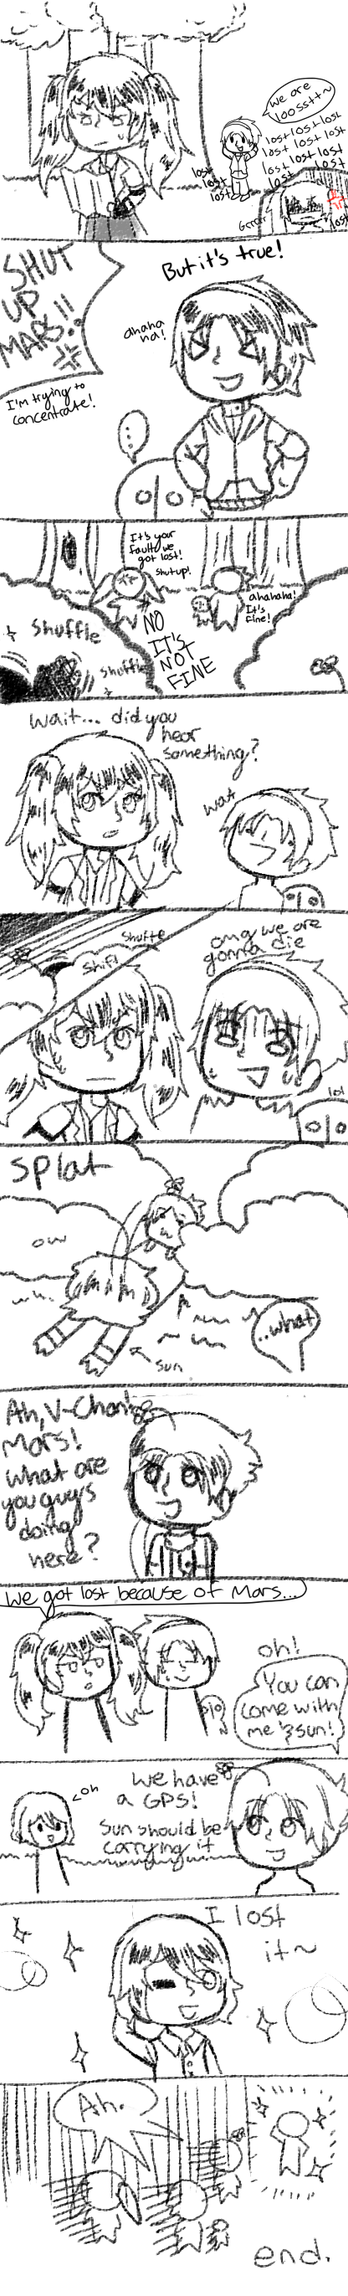 Comic-Lost by Gradient-Of-Gold